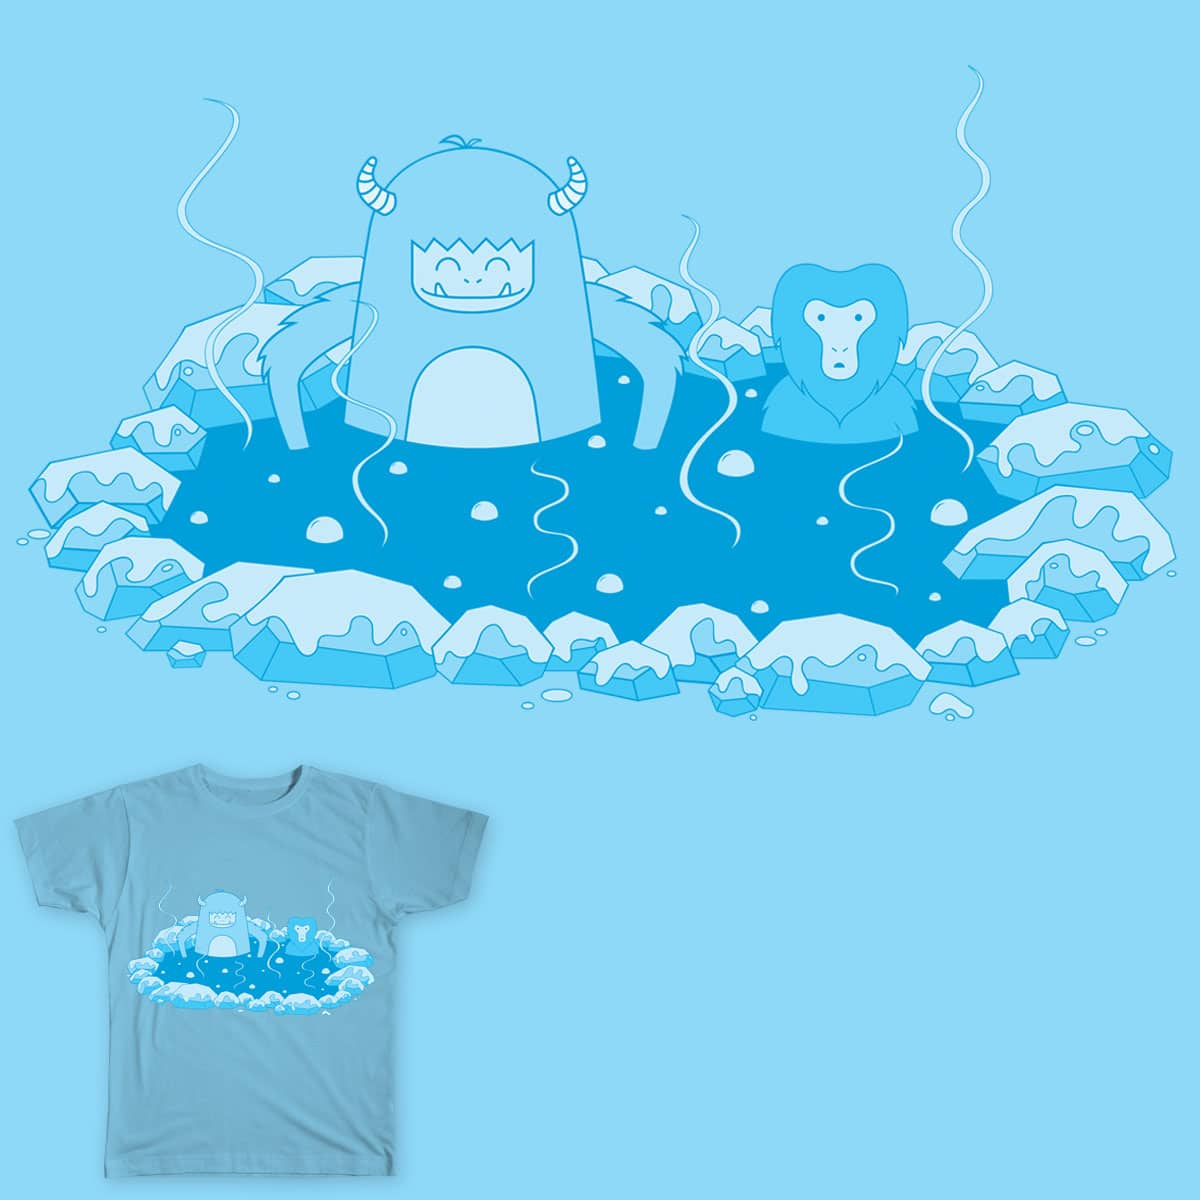 Abominable Hot Springs by kalmansor on Threadless